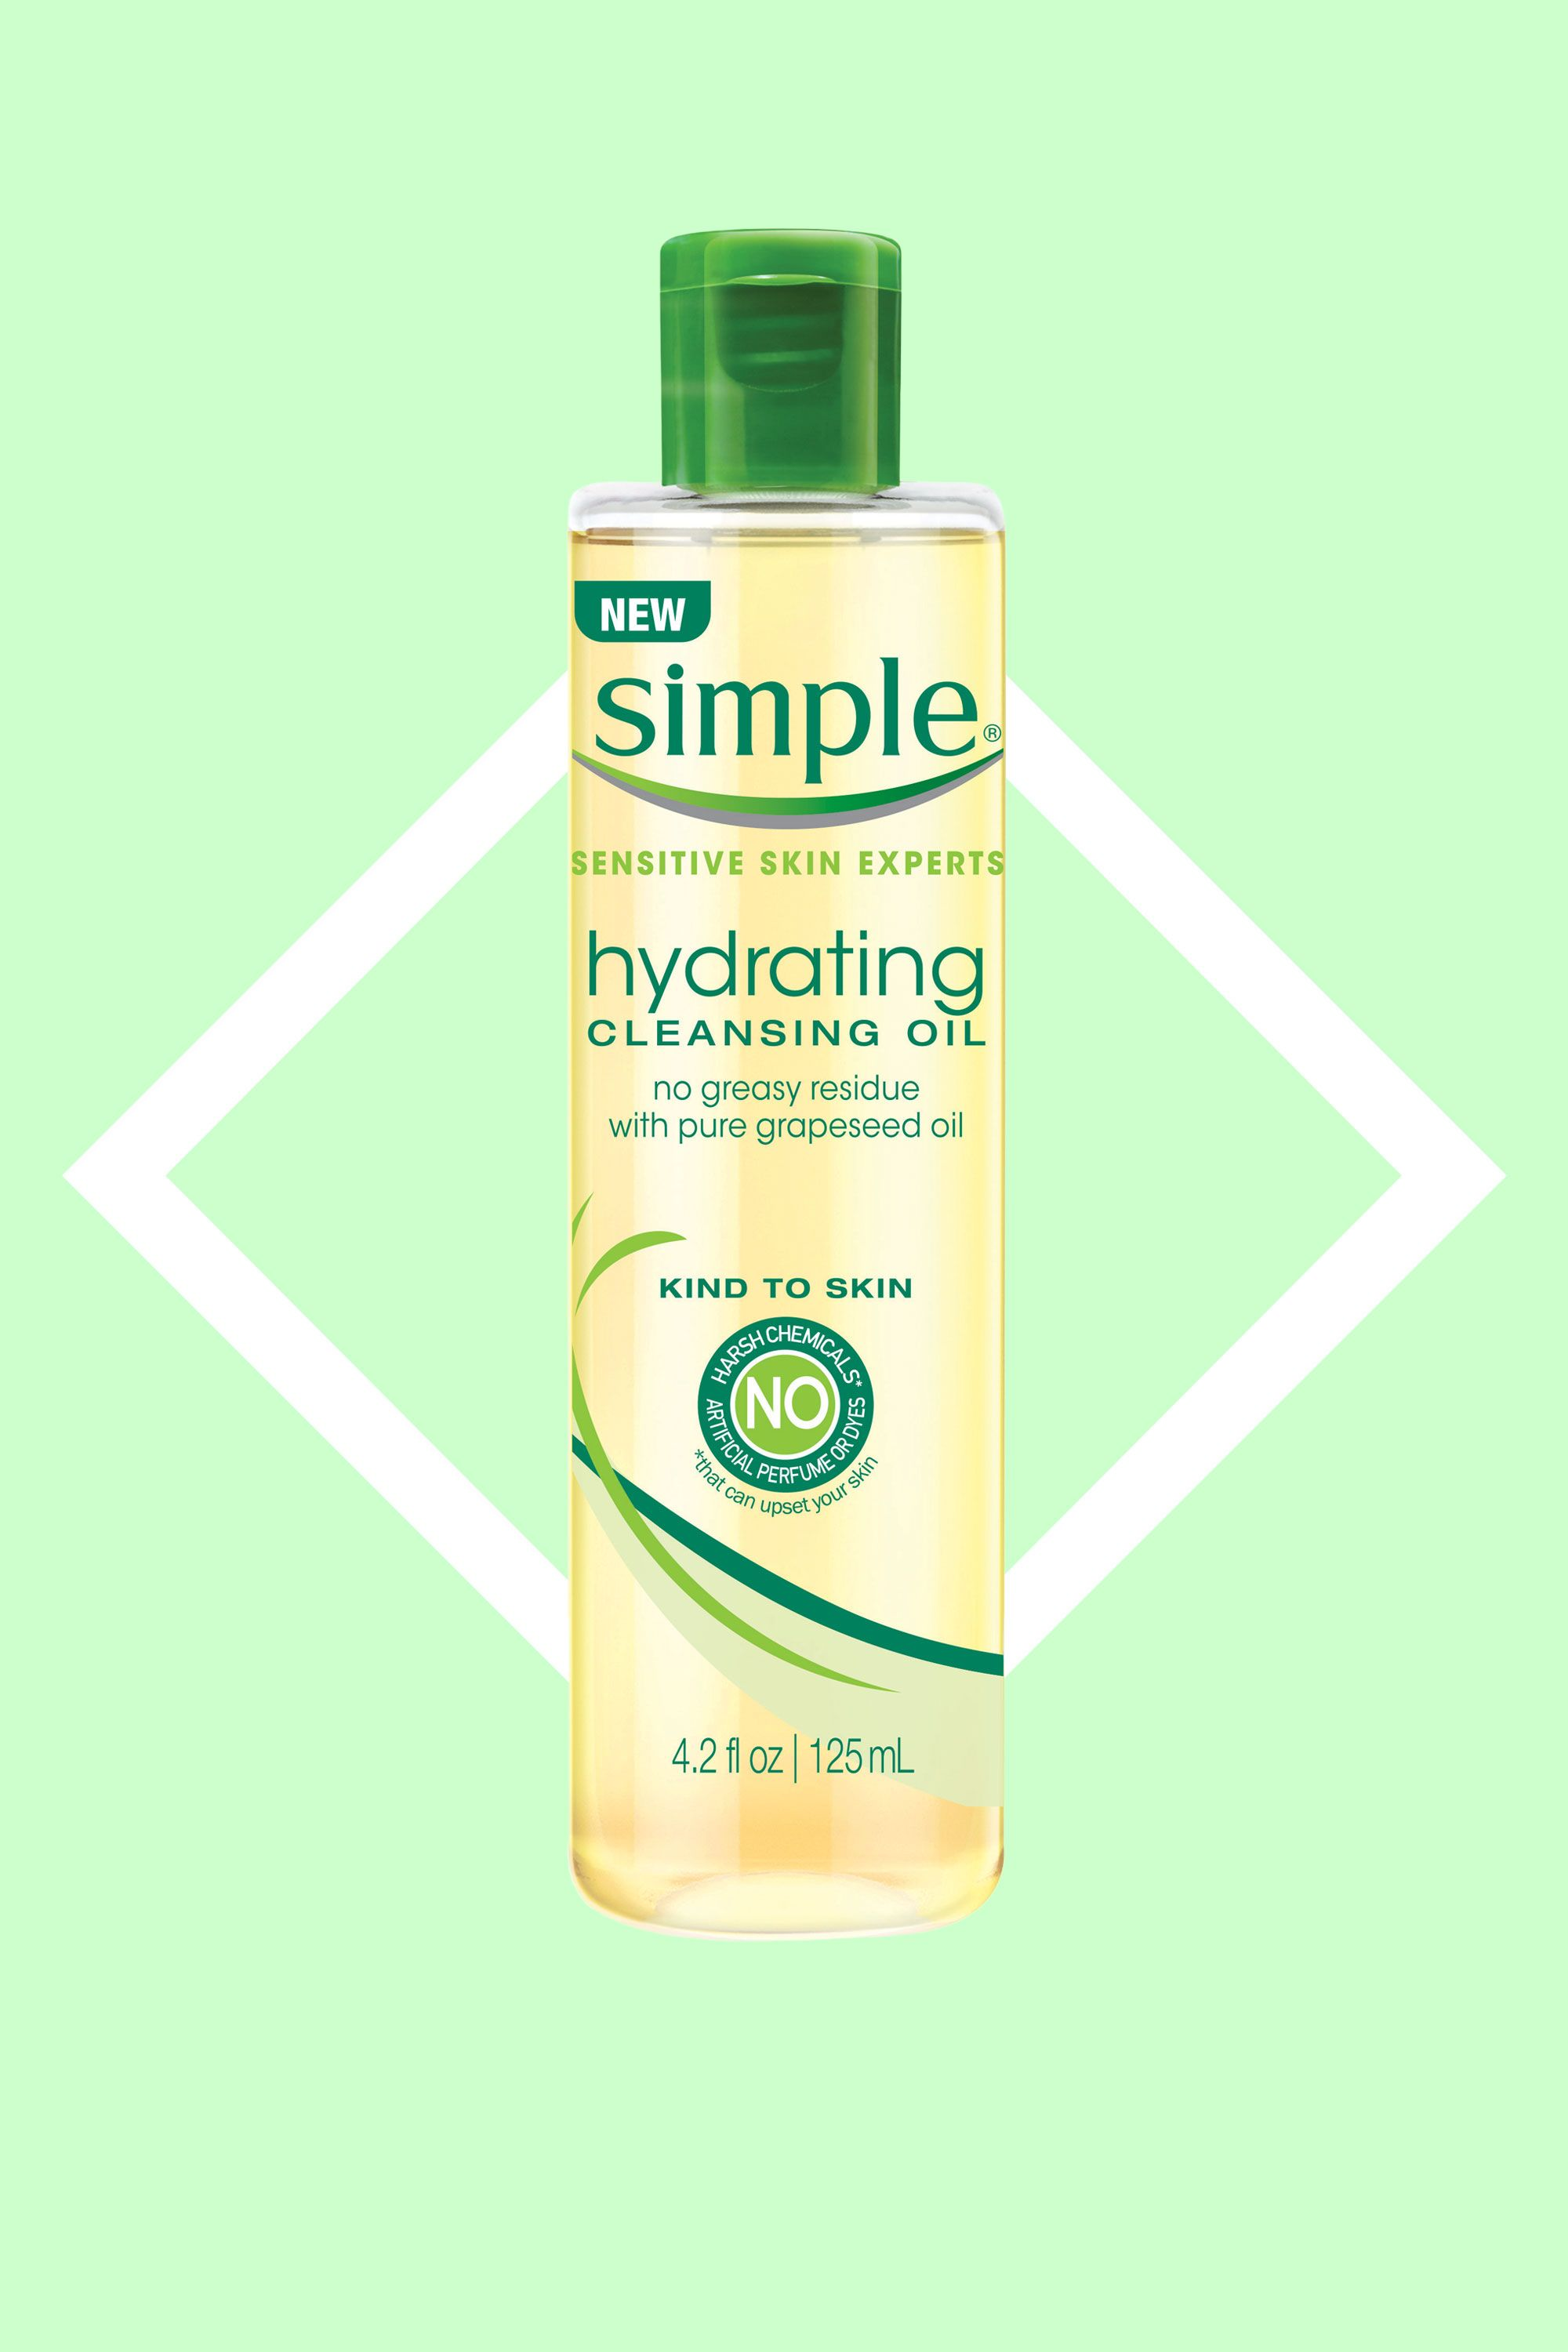 """<p>Cleansing oils (compared to the gel or cream you are used to lathering up with!) are the 'it' products for good reason. Oil attracts other oil and breaks it down quickly (think about your foundation, blush and well, gross pimple-causing oil). This one has 100 percentpure grapeseed oil, so it leaves dry skin instantlyhydrated, not tight and dry.</p><p><a href=""""http://bit.ly/2bwnqf9"""" target=""""_blank"""">Simple Hydrating Cleansing Oil</a>, $9.99<br></p>"""